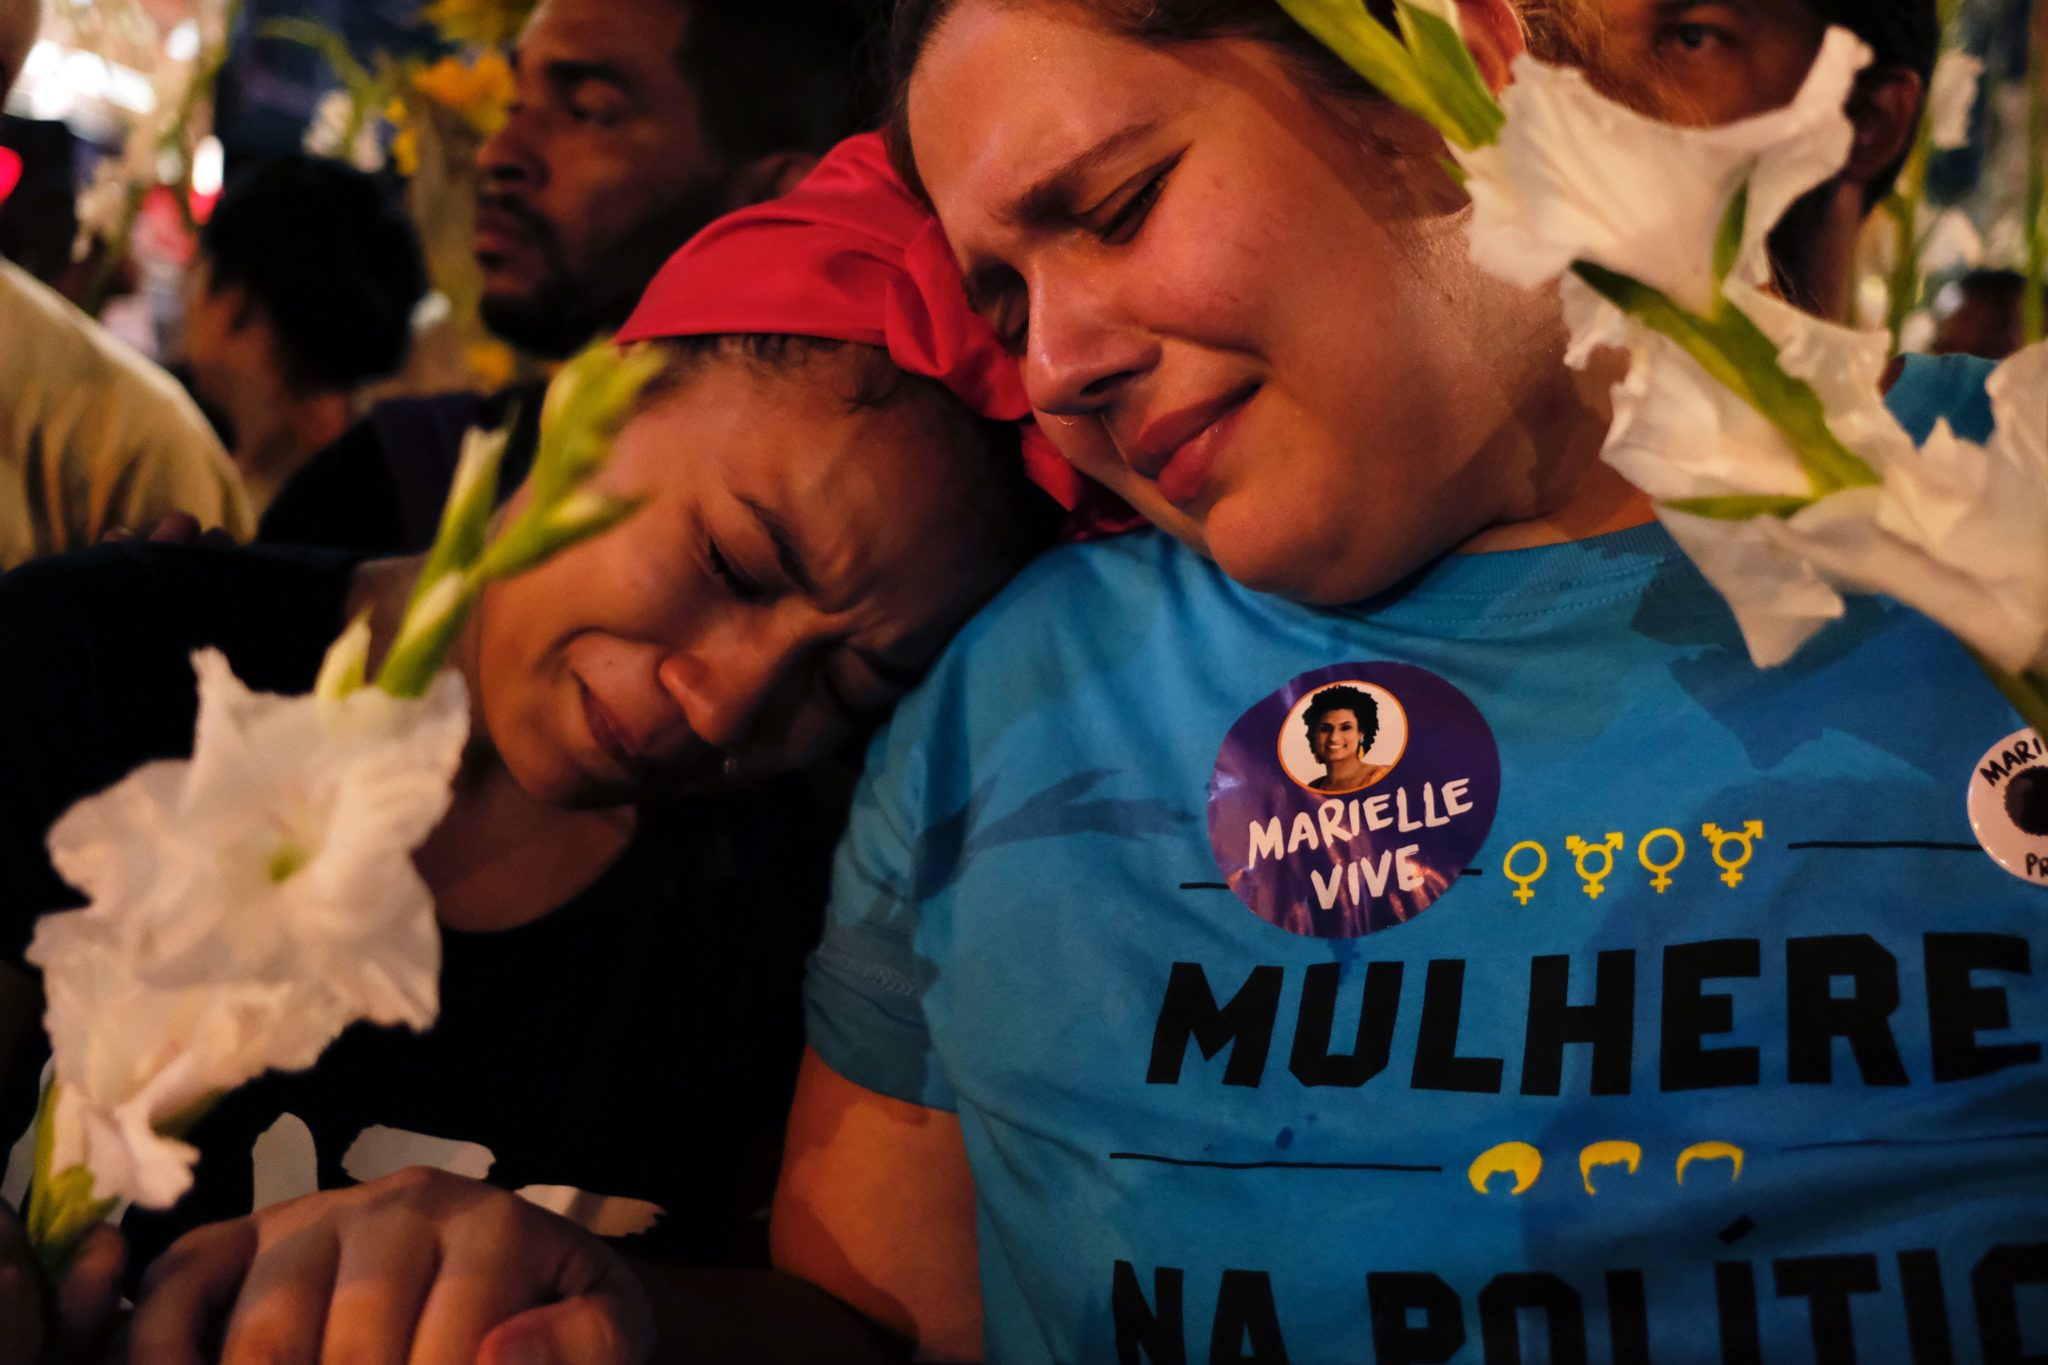 Women react at a march while mourning activist Marielle Franco in Rio de Janeiro on April 14, 2018, one month after her murder in Lapa. The murder of Franco, a black Brazilian activist who fought her way out of the slums to become a popular councilor, made headlines around the world. The outspoken 38-year-old, who was a critic of police brutality, an advocate for minorities and the posterchild of a new type of politics, was shot dead on March 14 in an assassination-style killing with four bullets to the head. / AFP PHOTO / DIEGO HERCULANO (Photo credit should read DIEGO HERCULANO/AFP/Getty Images)